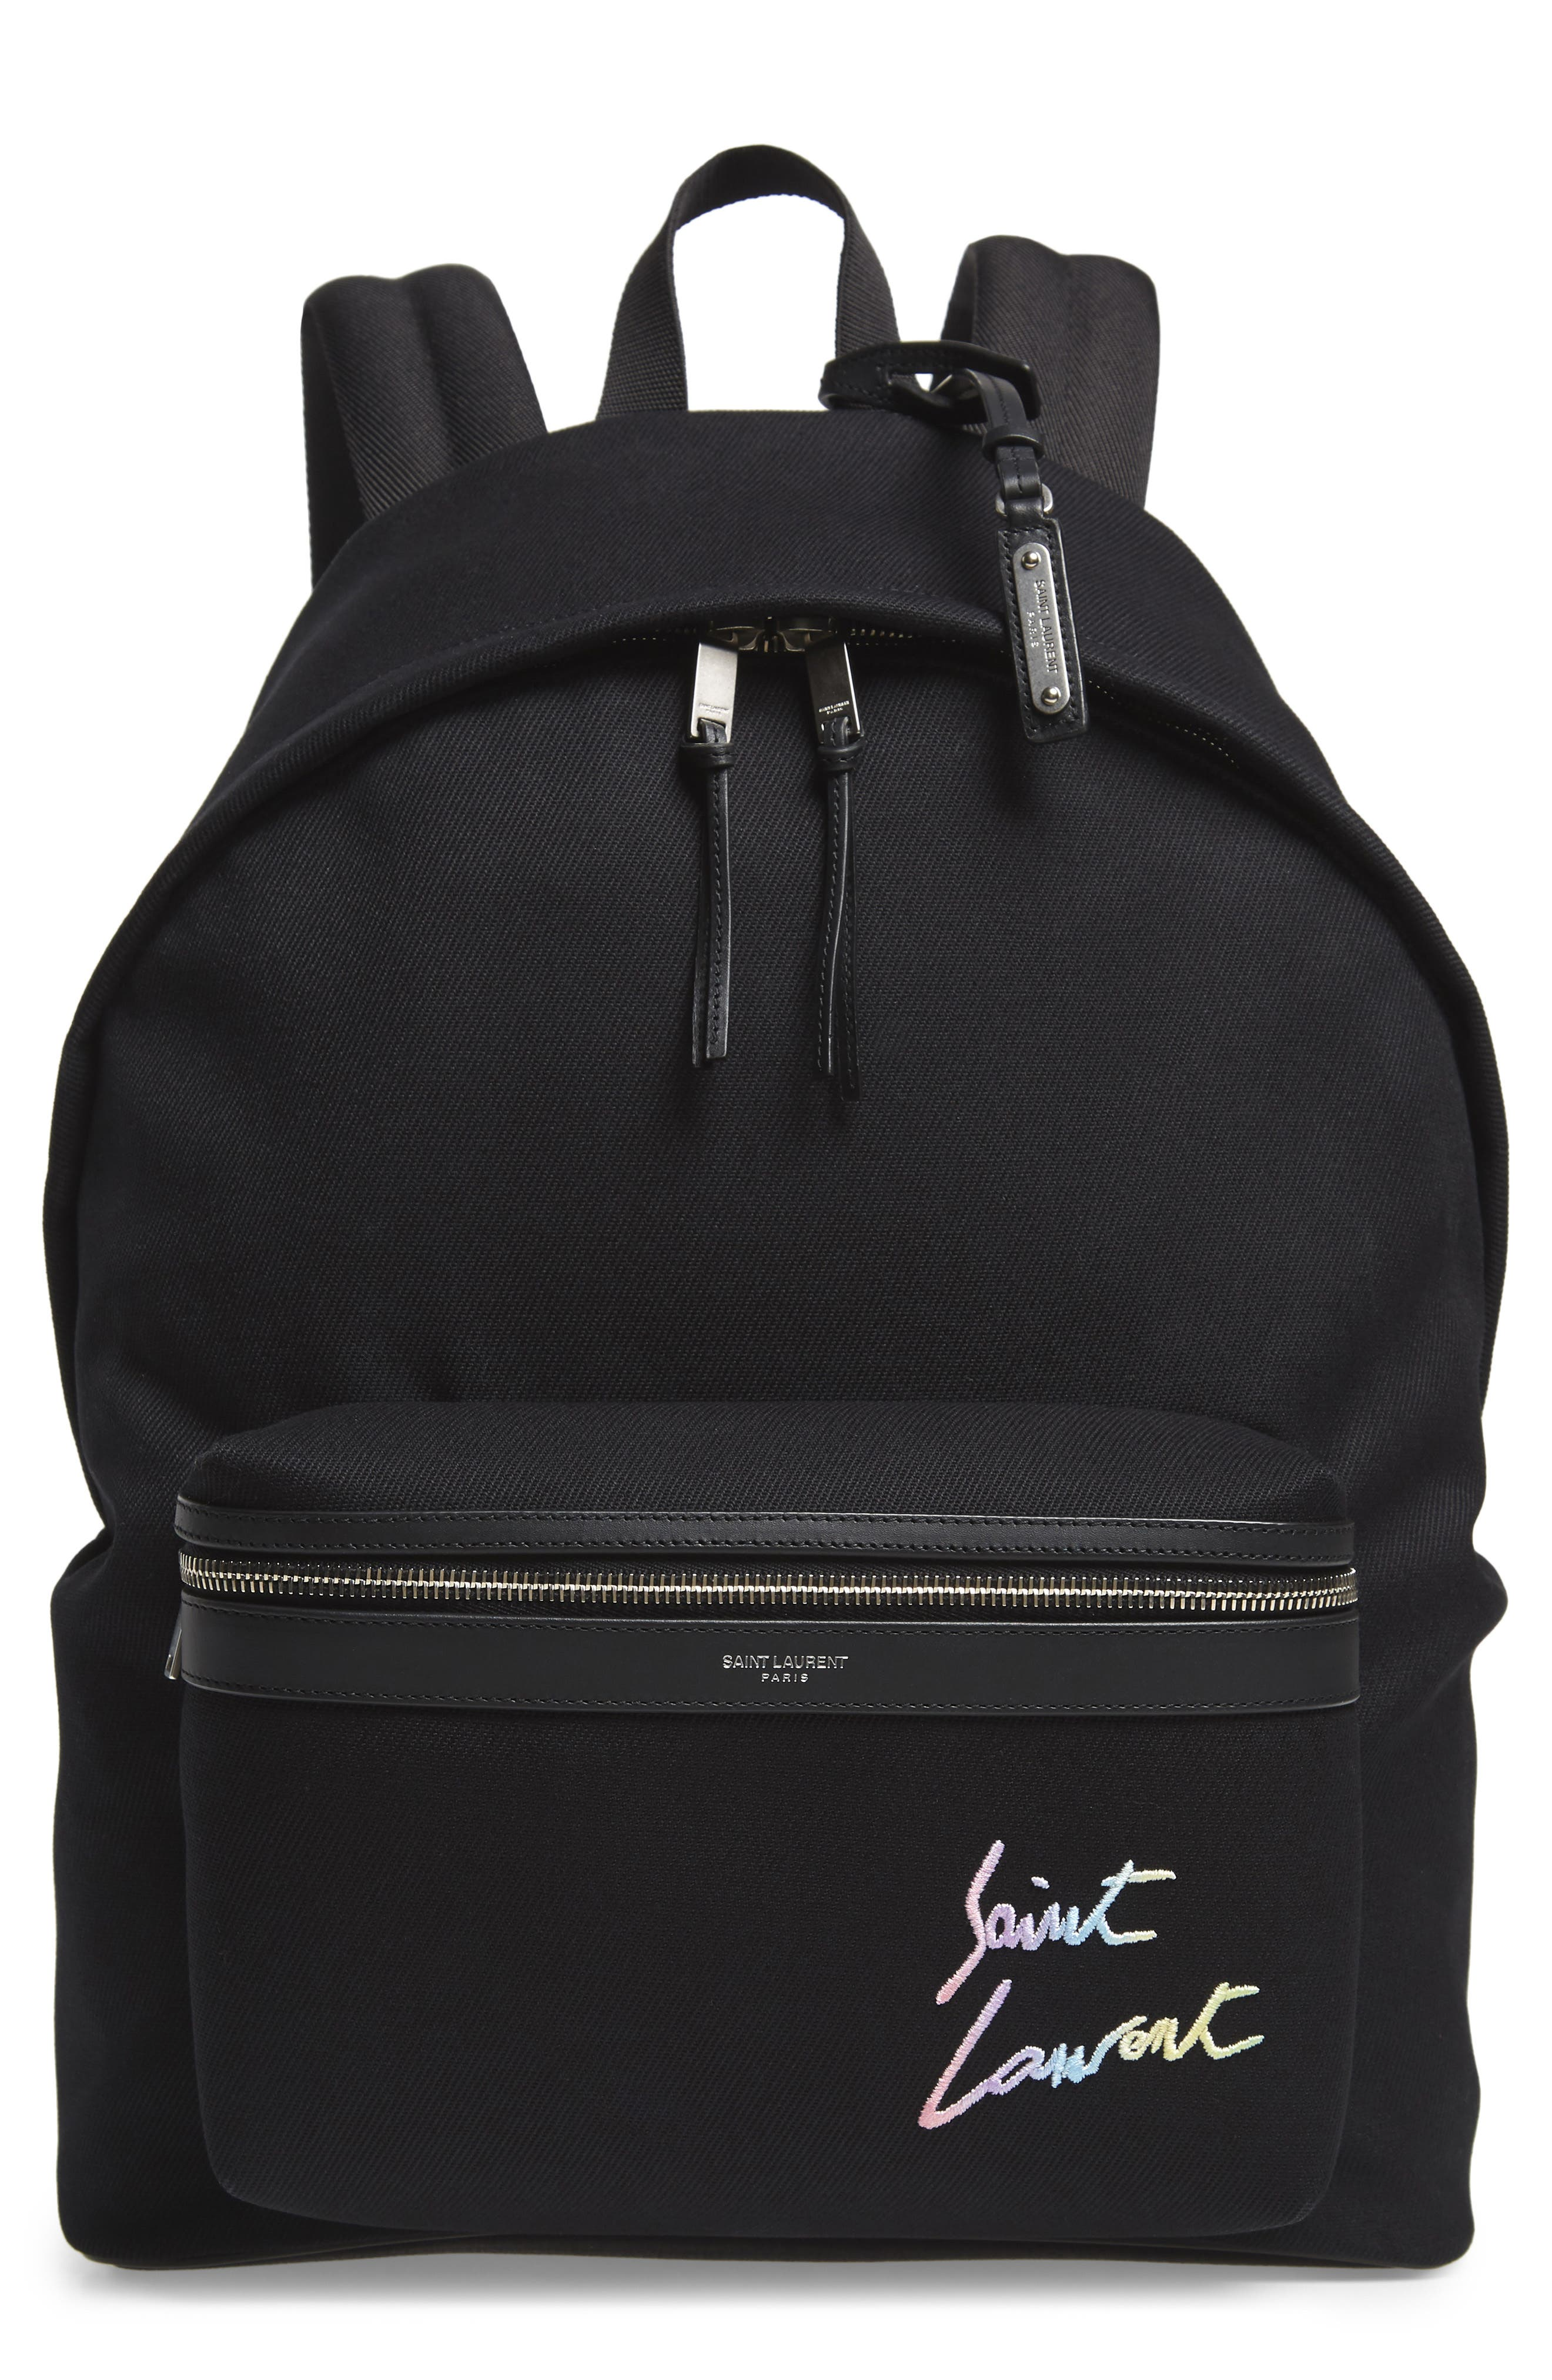 City Canvas Backpack,                         Main,                         color, BLACK